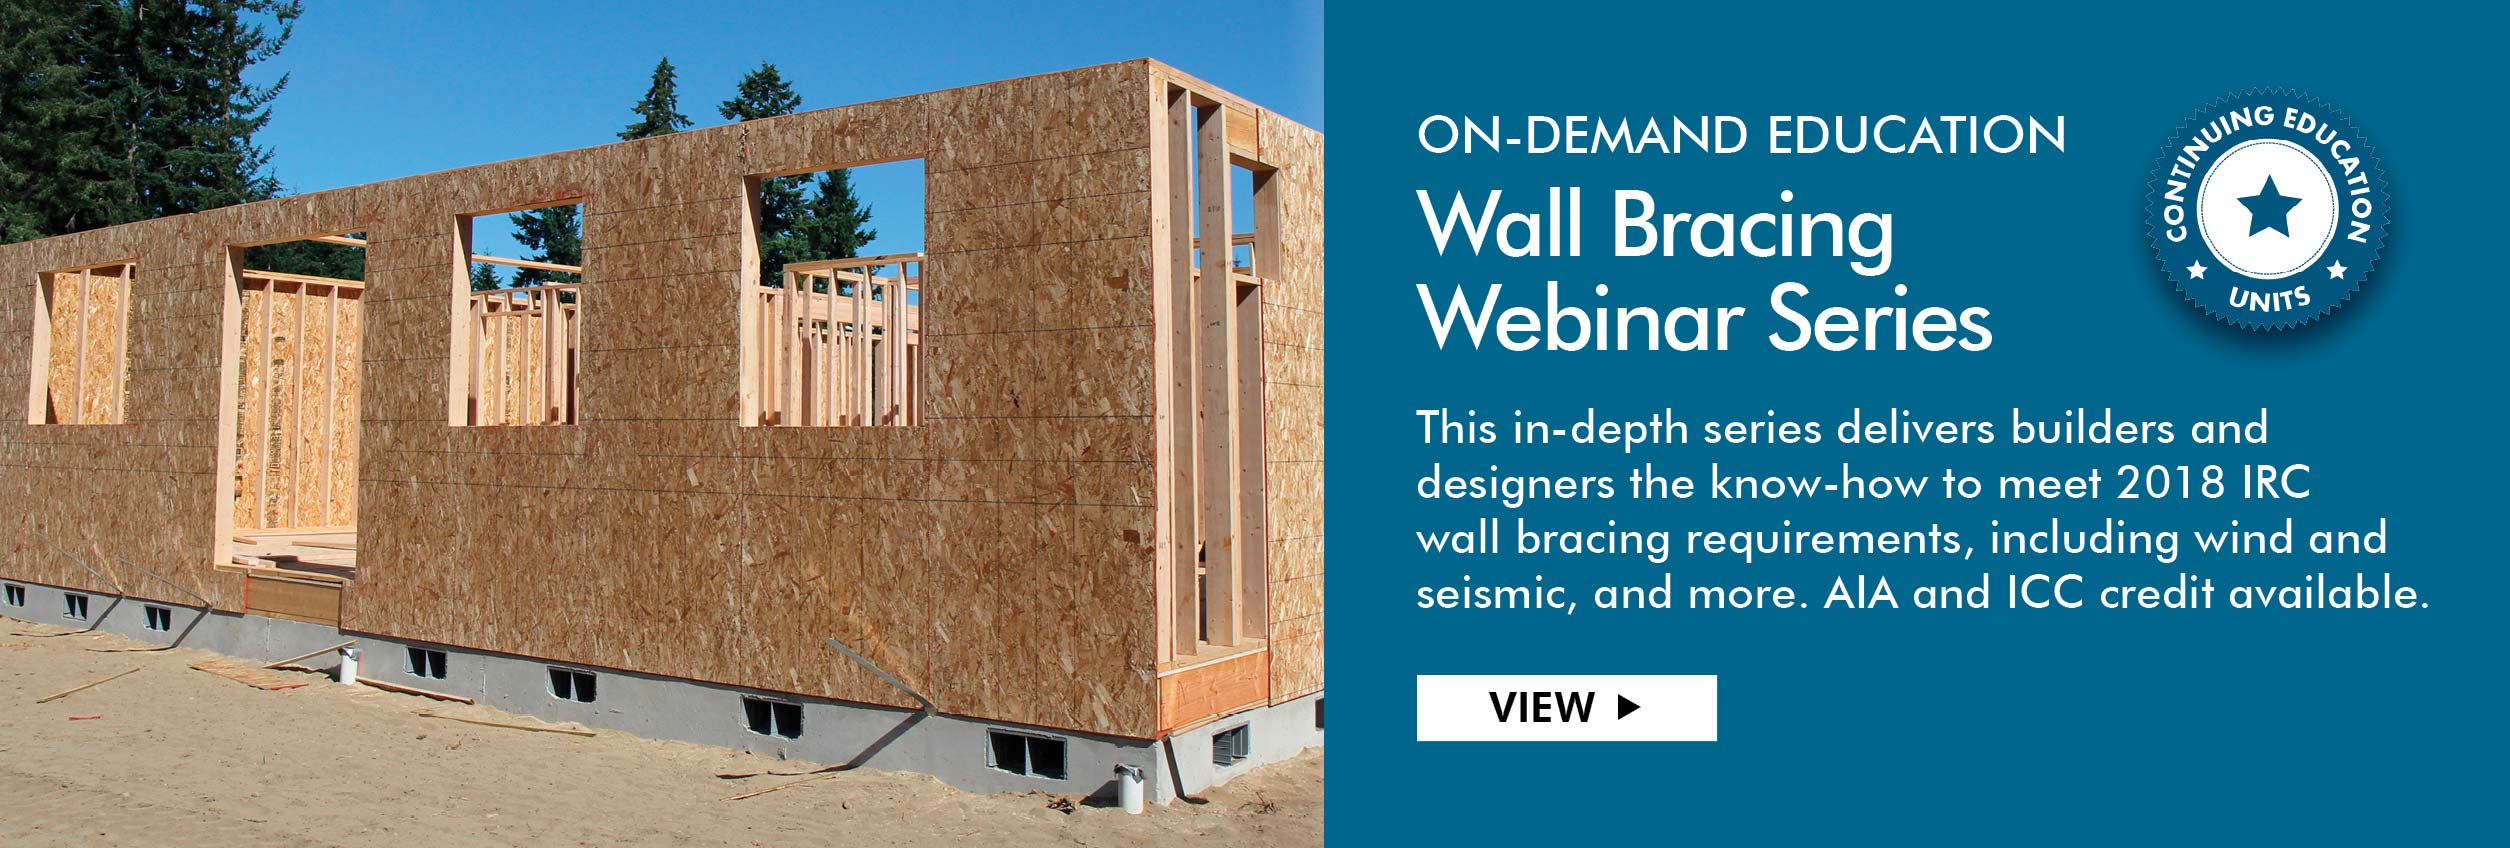 2018 IRC Wall Bracing Webinar Series, ICC and AIA approved